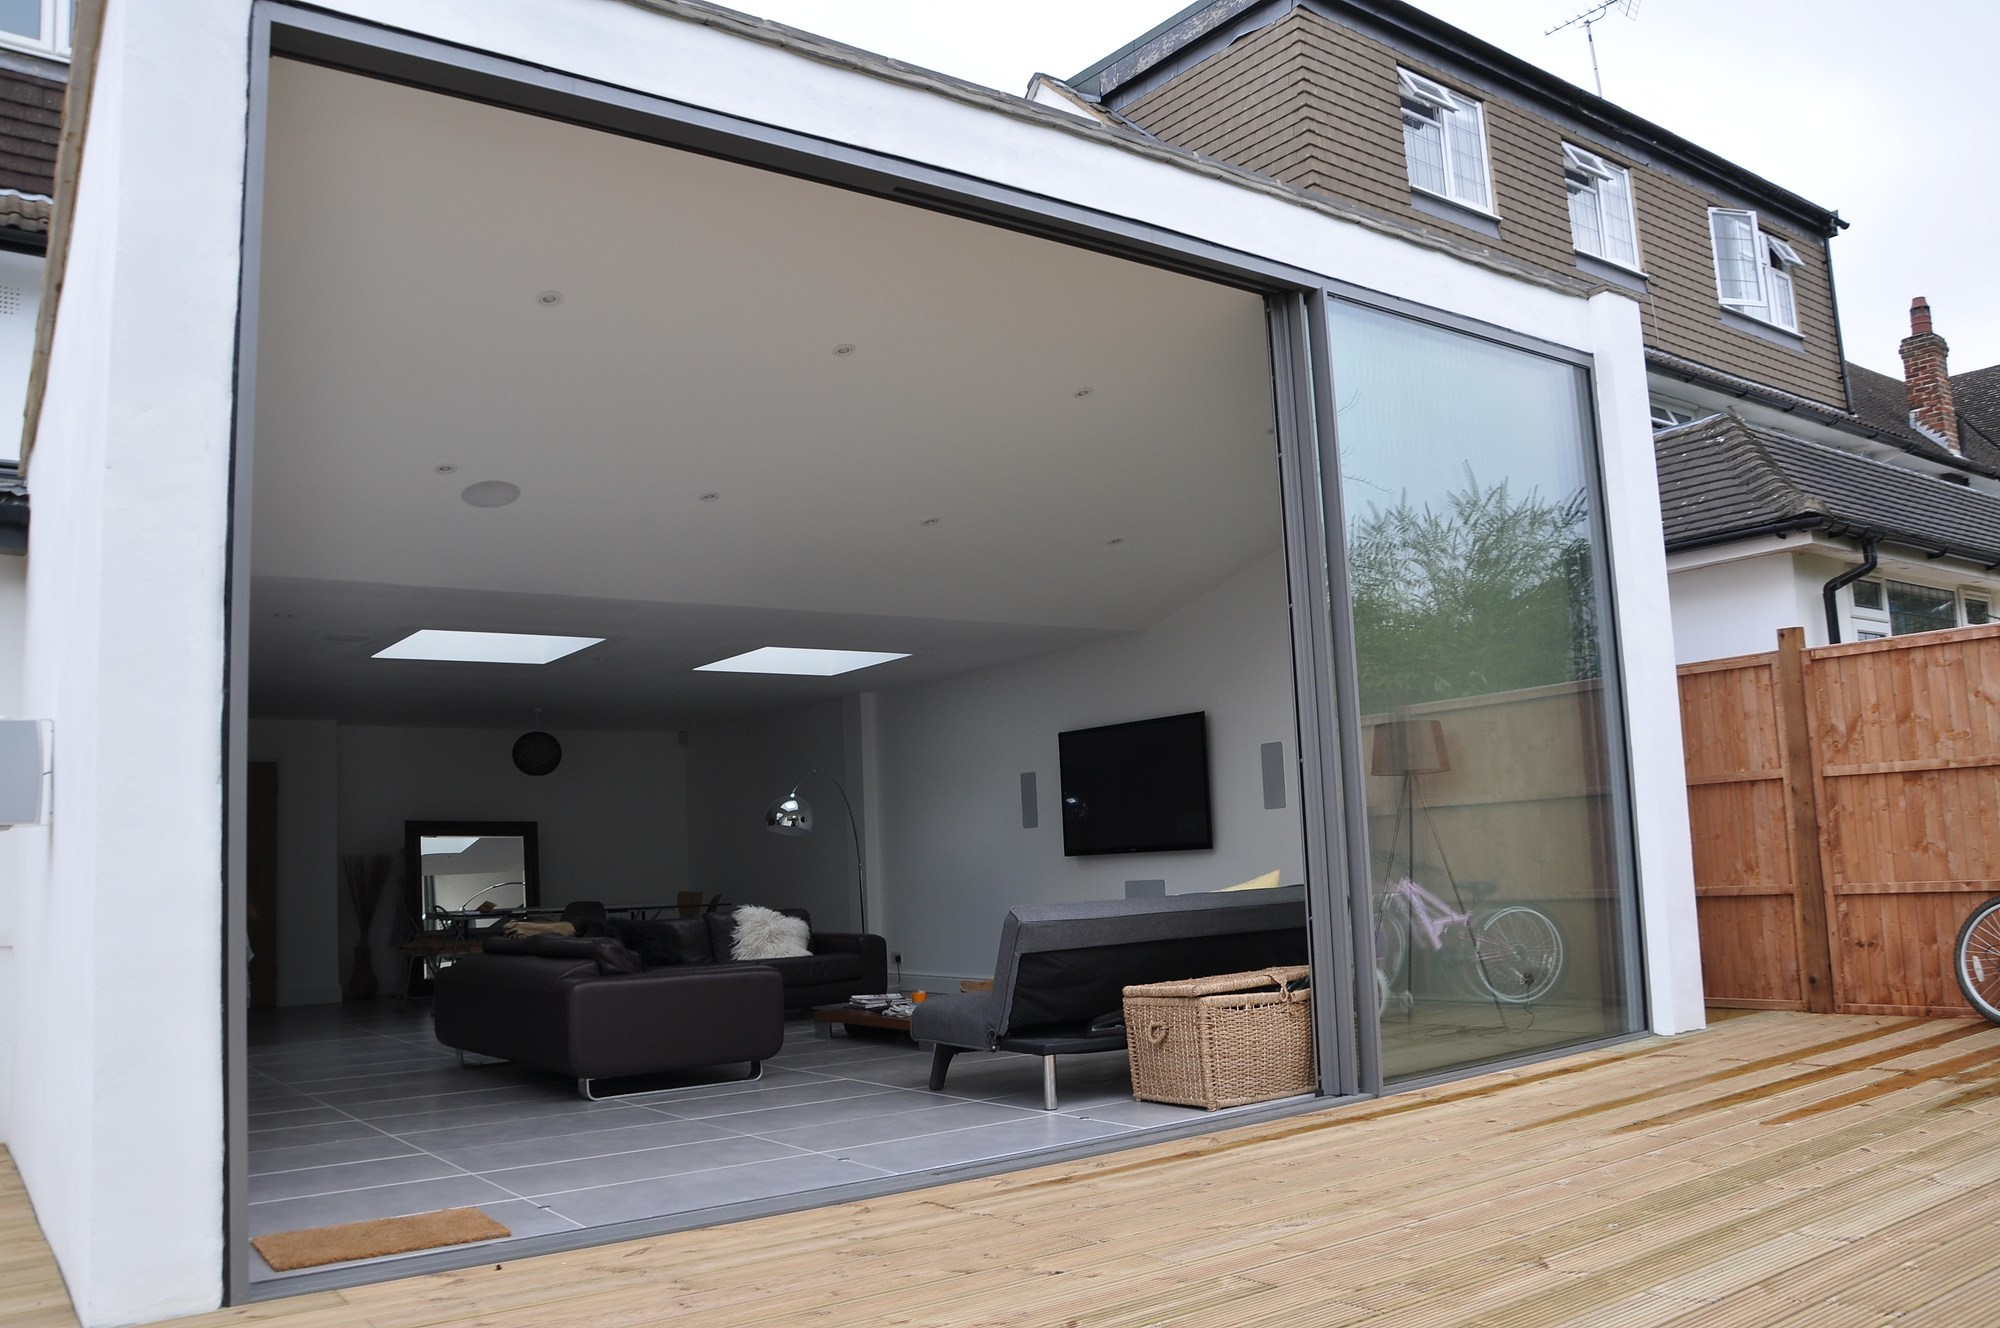 KELLER minimal windows® Slim frame sliding glass doors to a contemporary extension in Hertfordshire